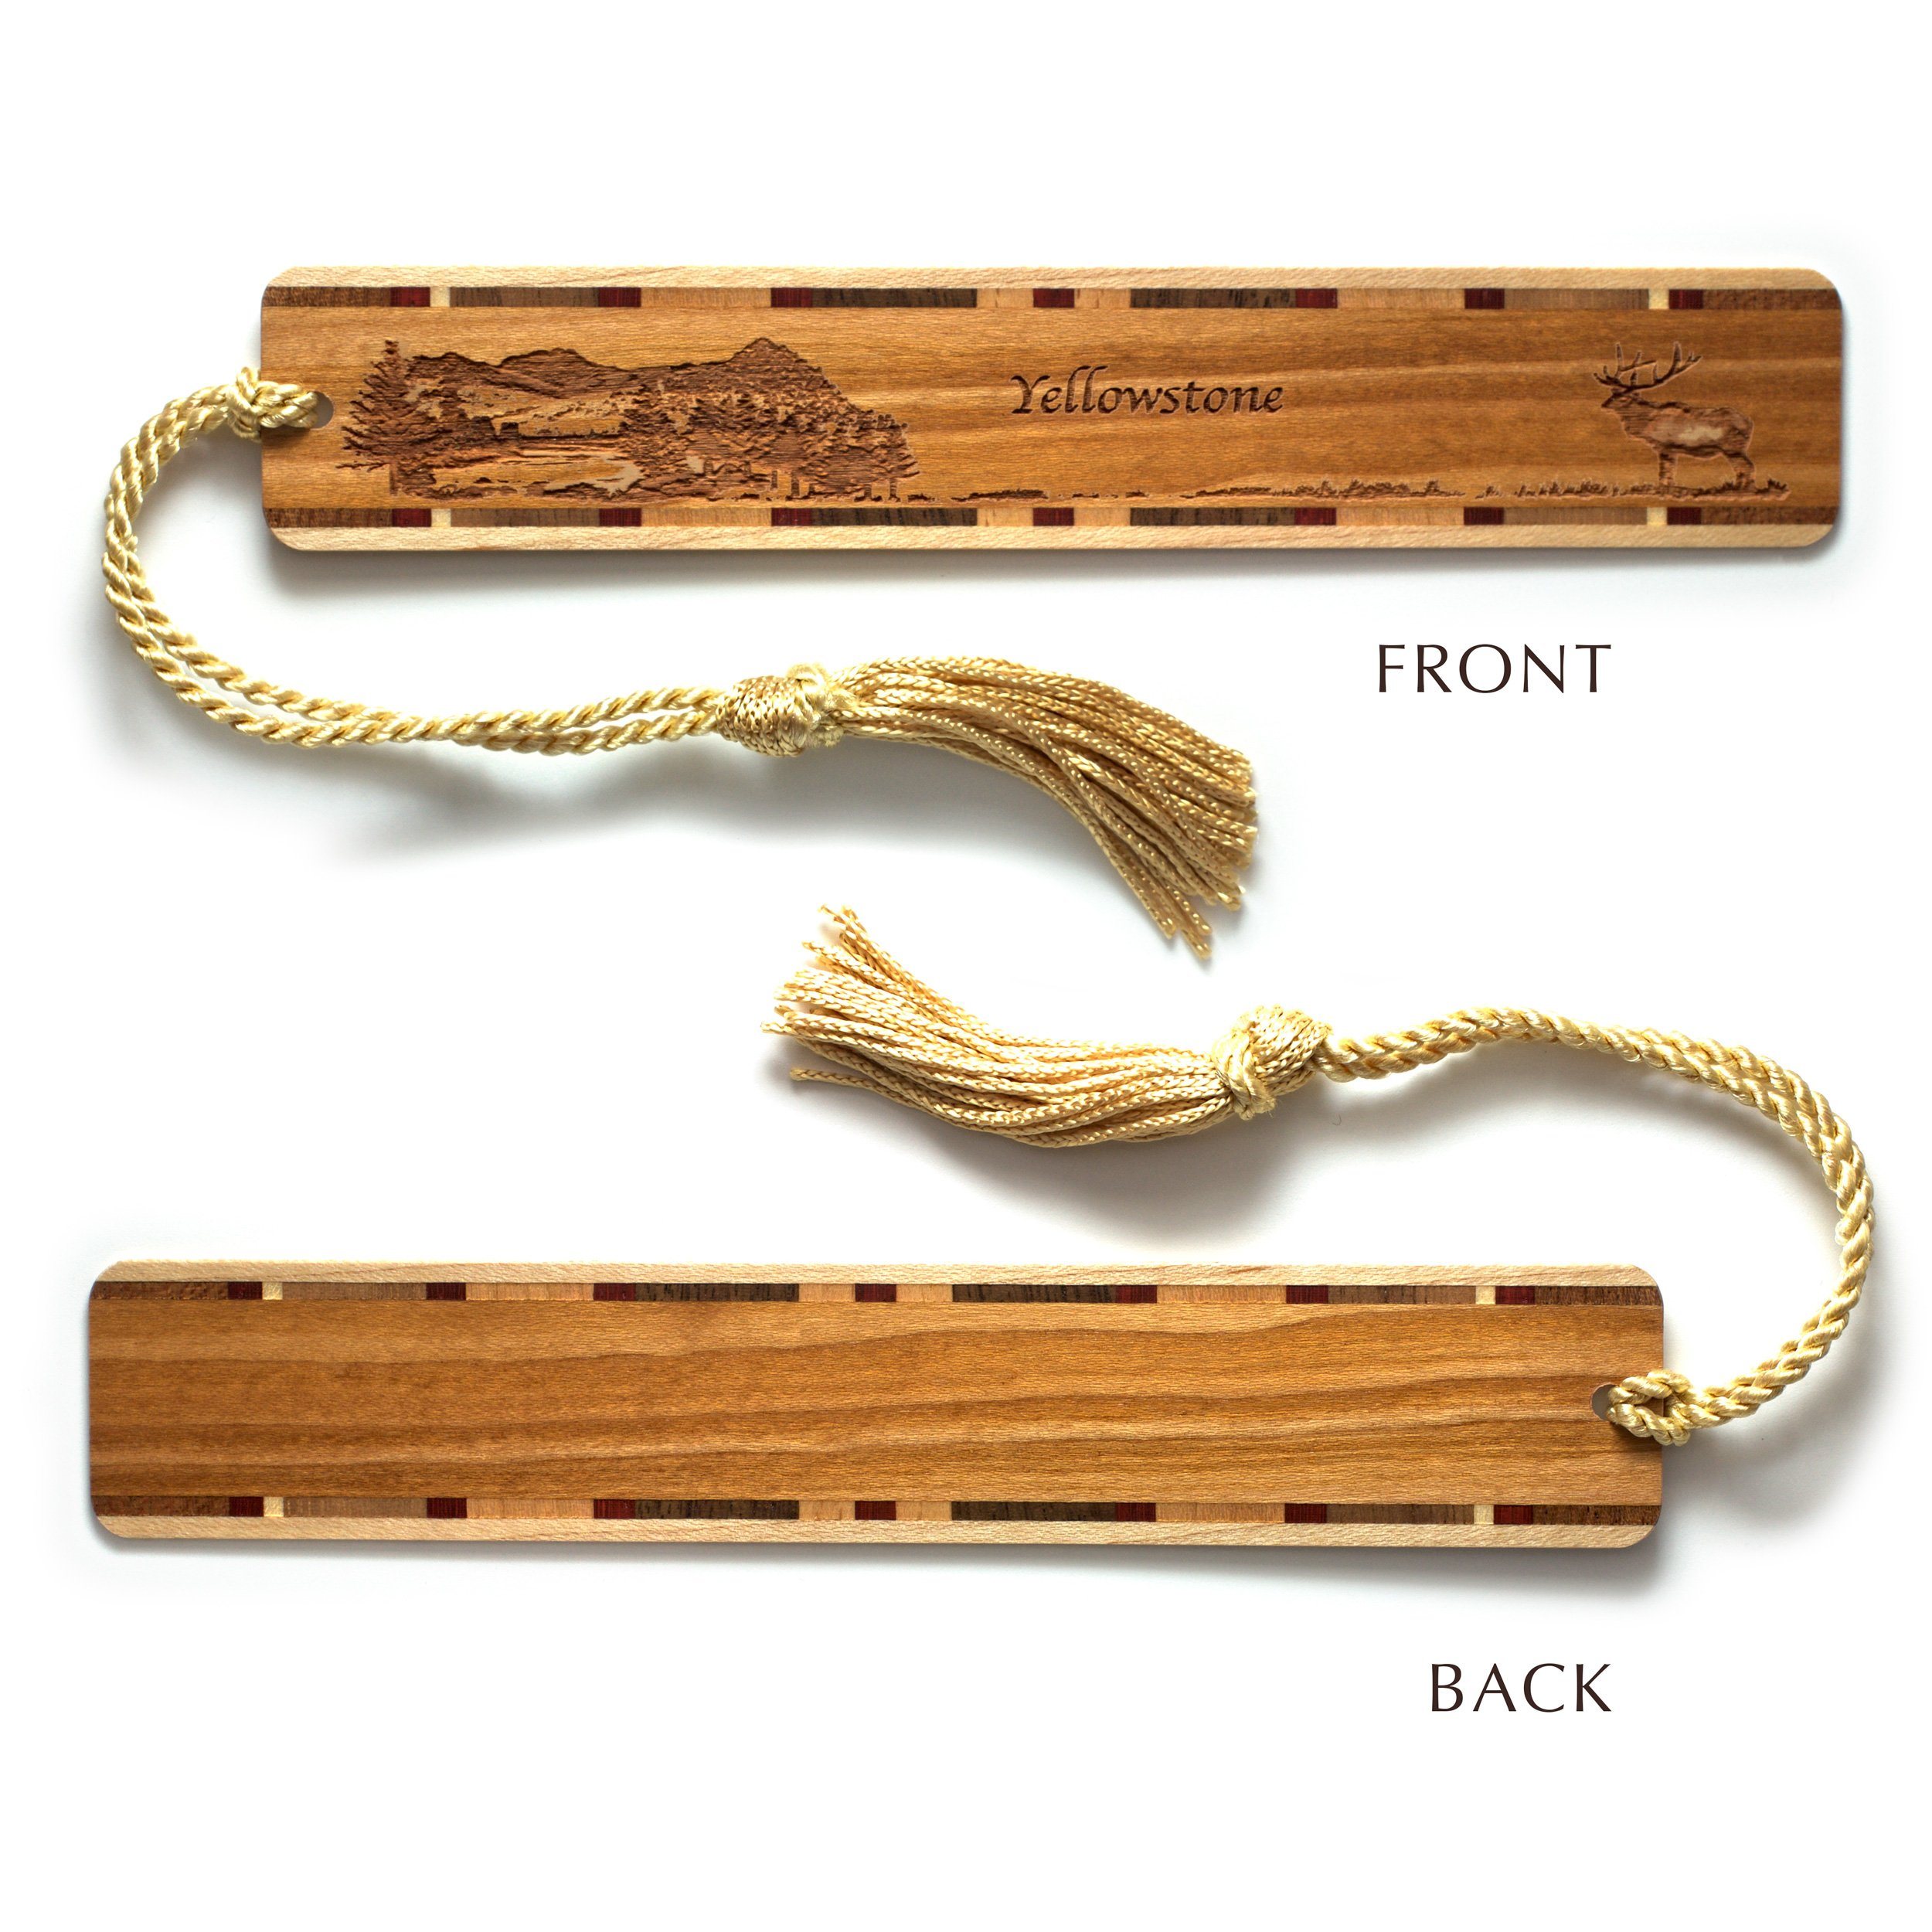 Mitercraft Engraved Wooden Bookmark - Yellowstone National Park, Wyoming with Tassel - Search B076VW33V3 to See Personalized Version. by Mitercraft (Image #2)